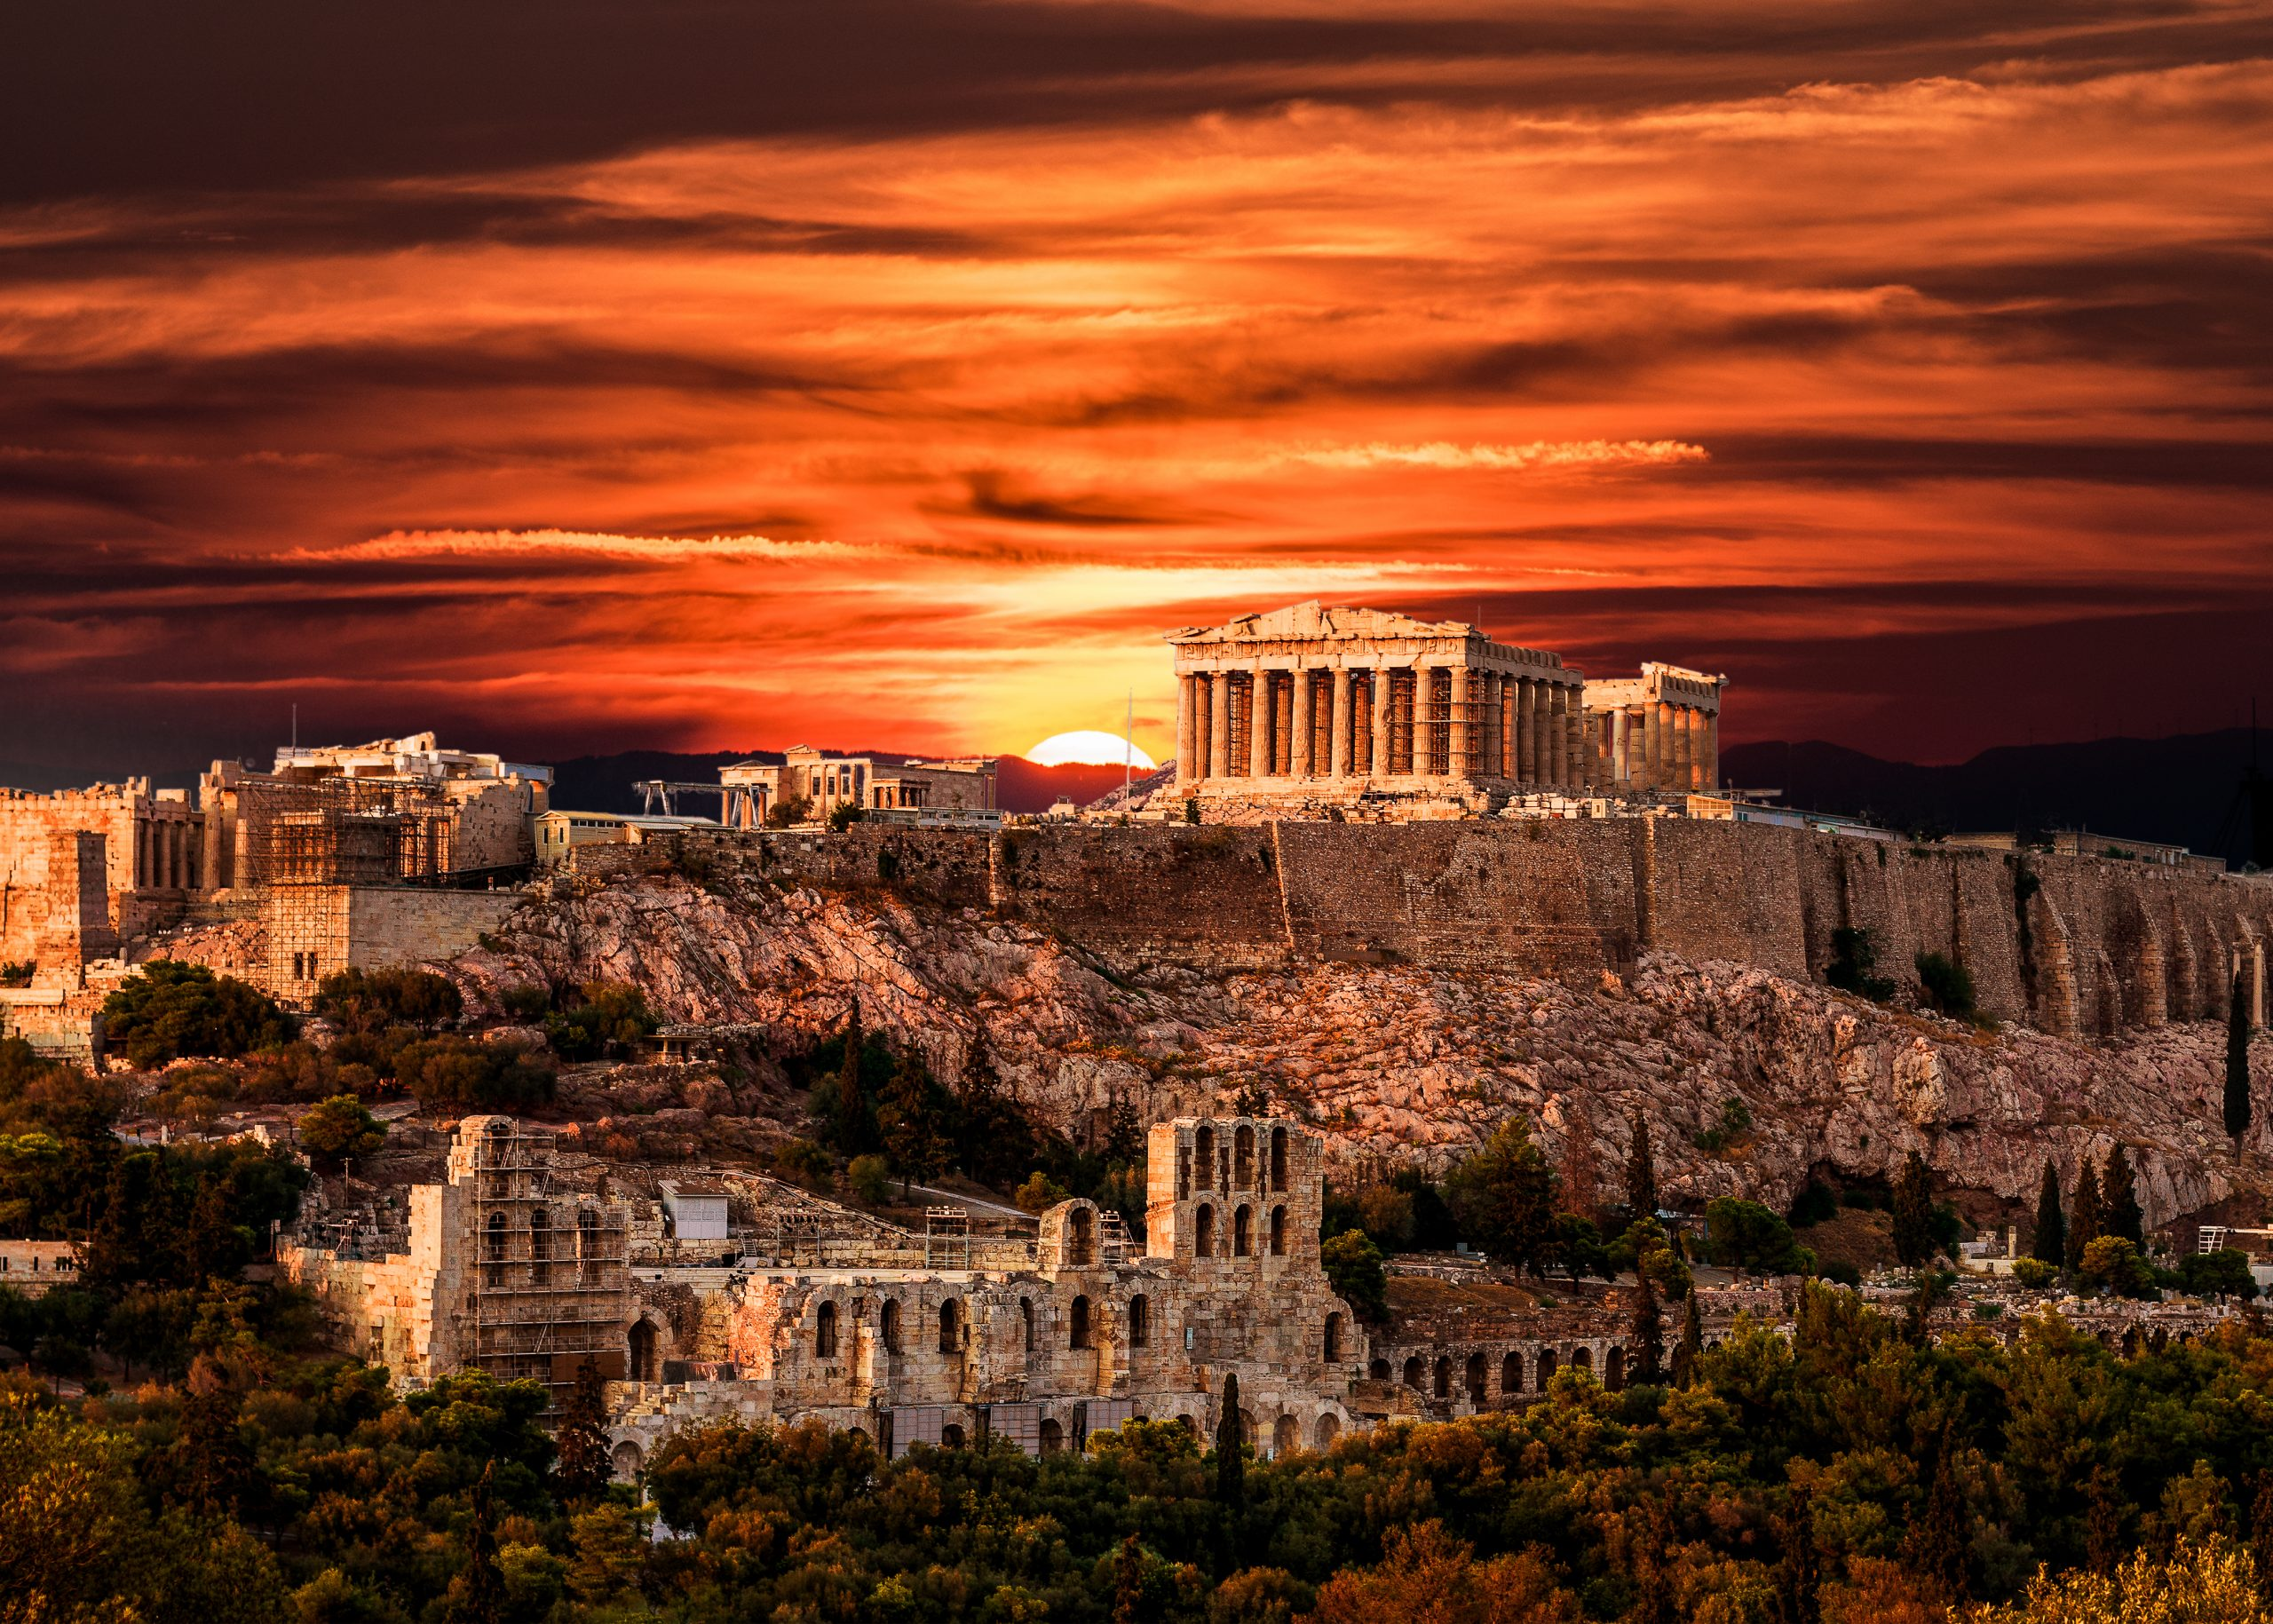 Sunset over the Acropolis